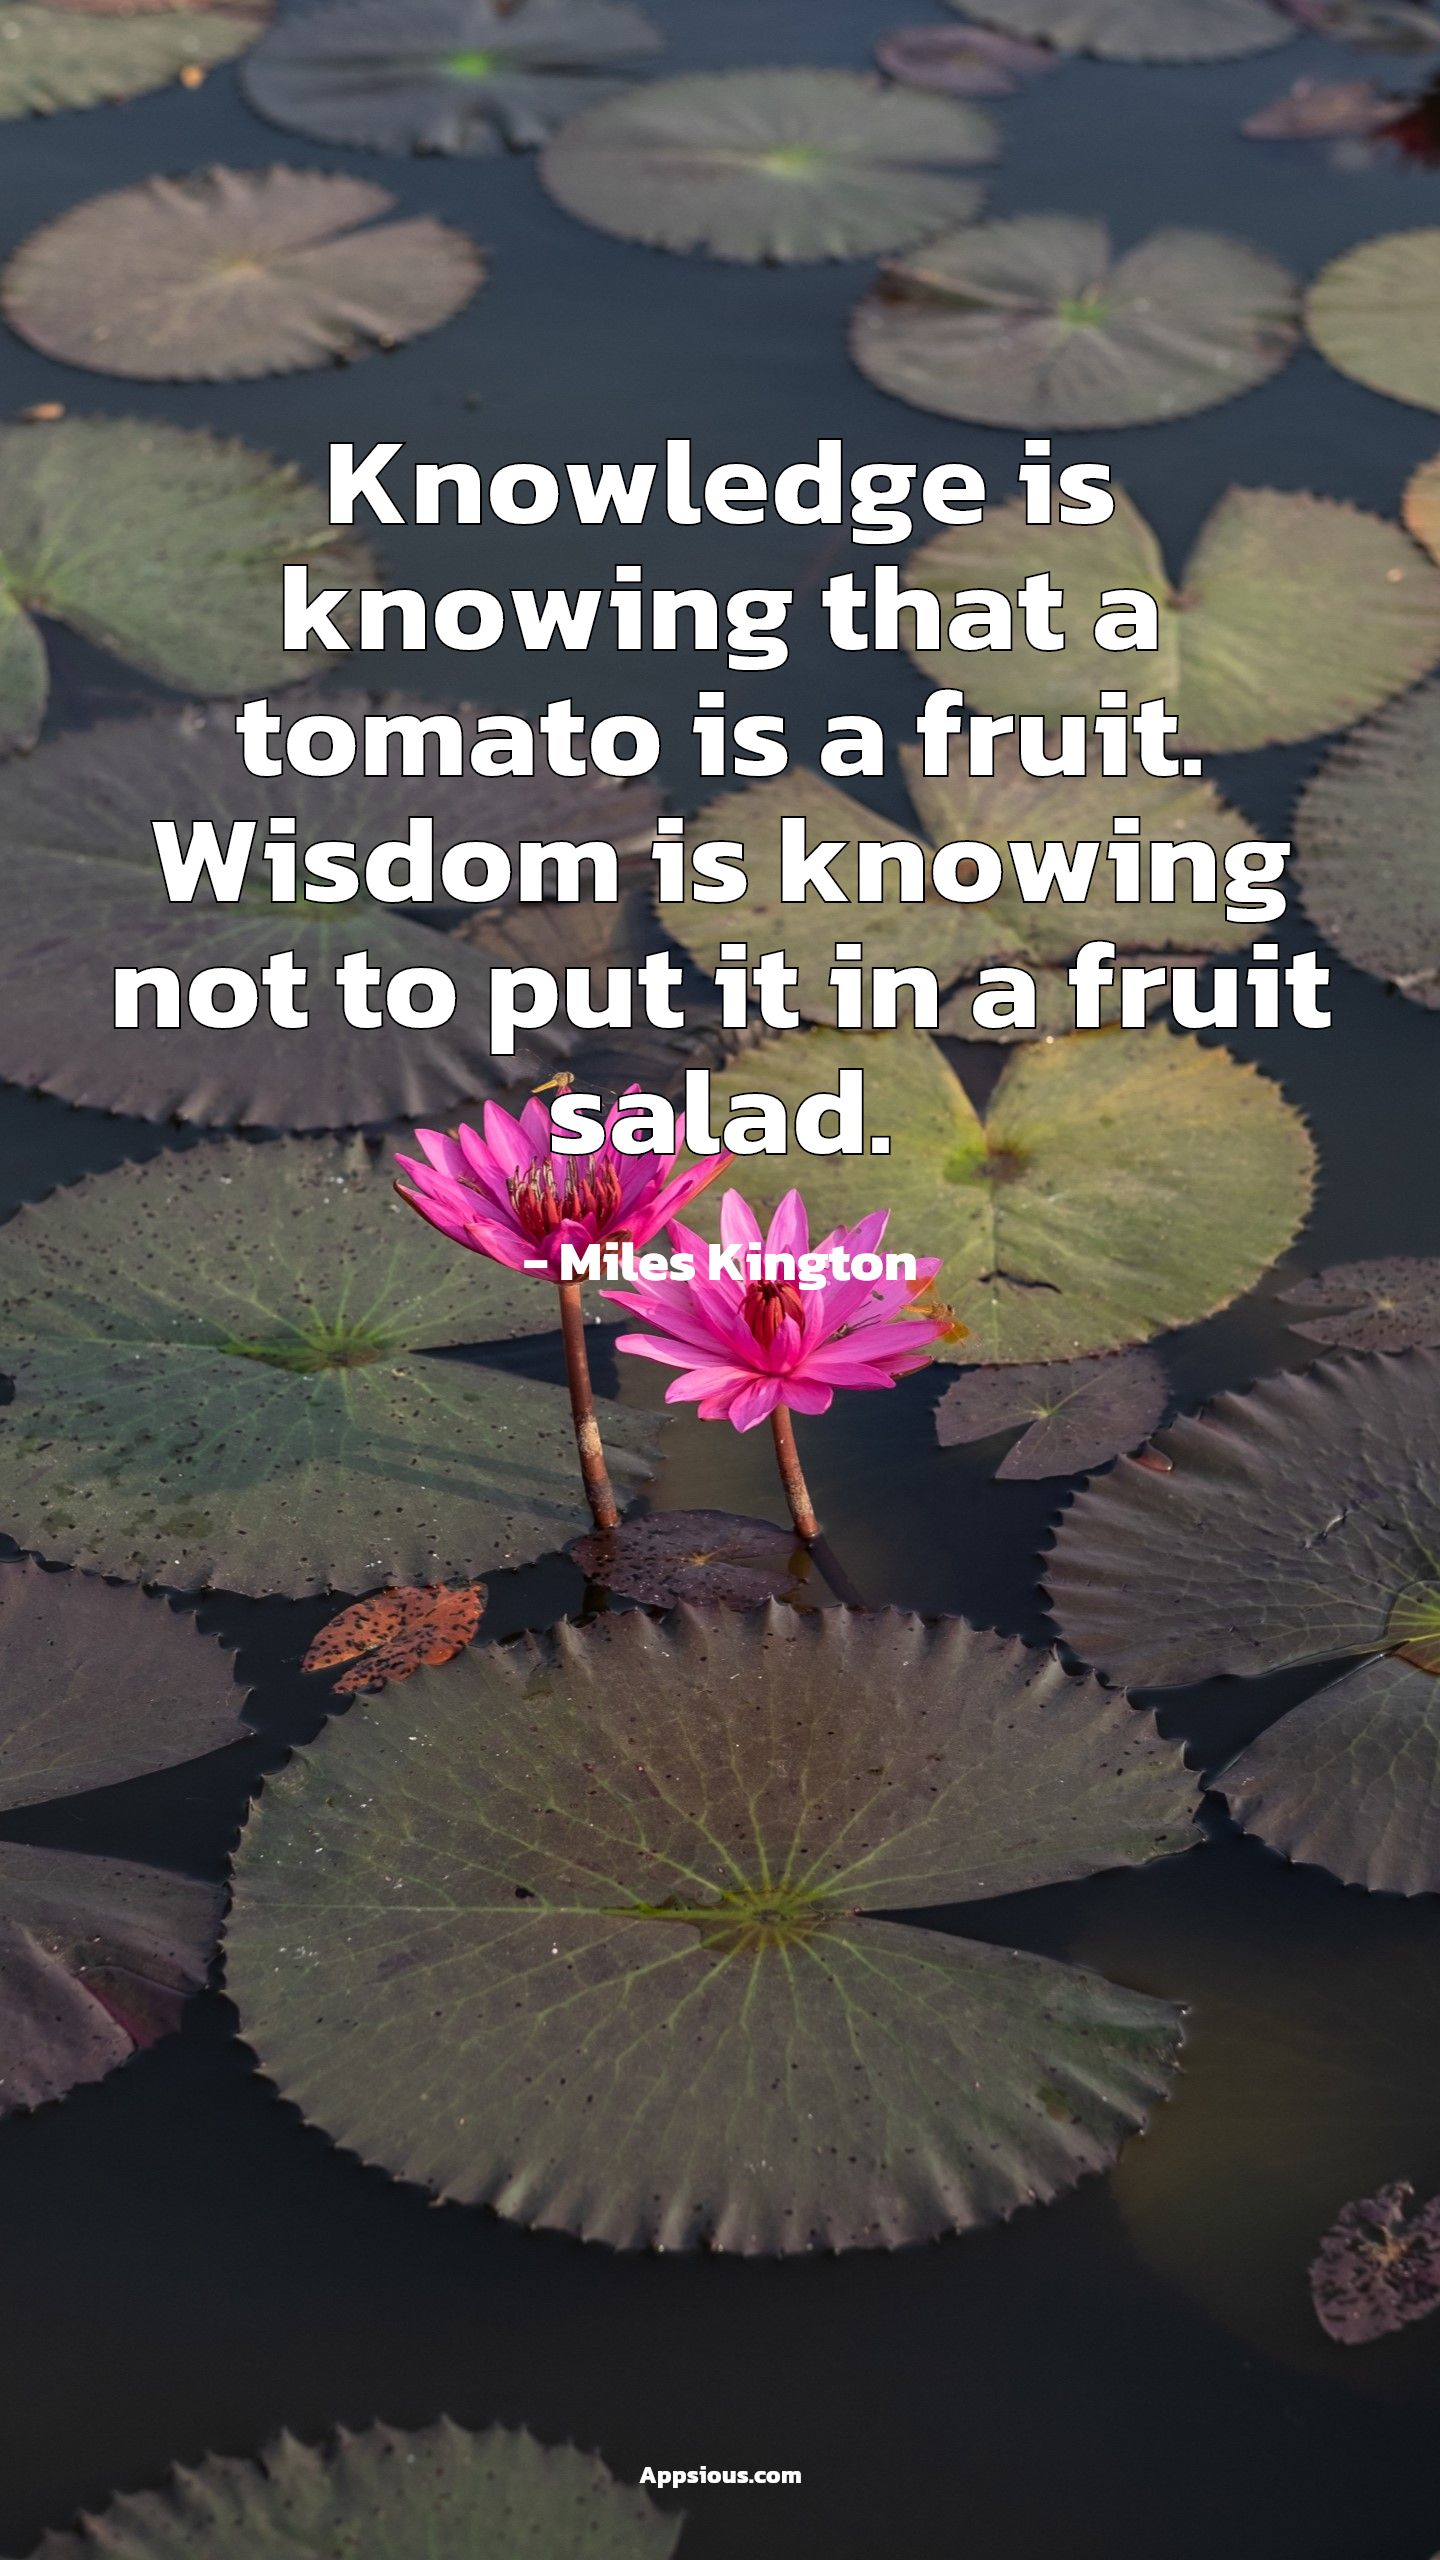 Knowledge is knowing that a tomato is a fruit. Wisdom is knowing not to put it in a fruit salad.